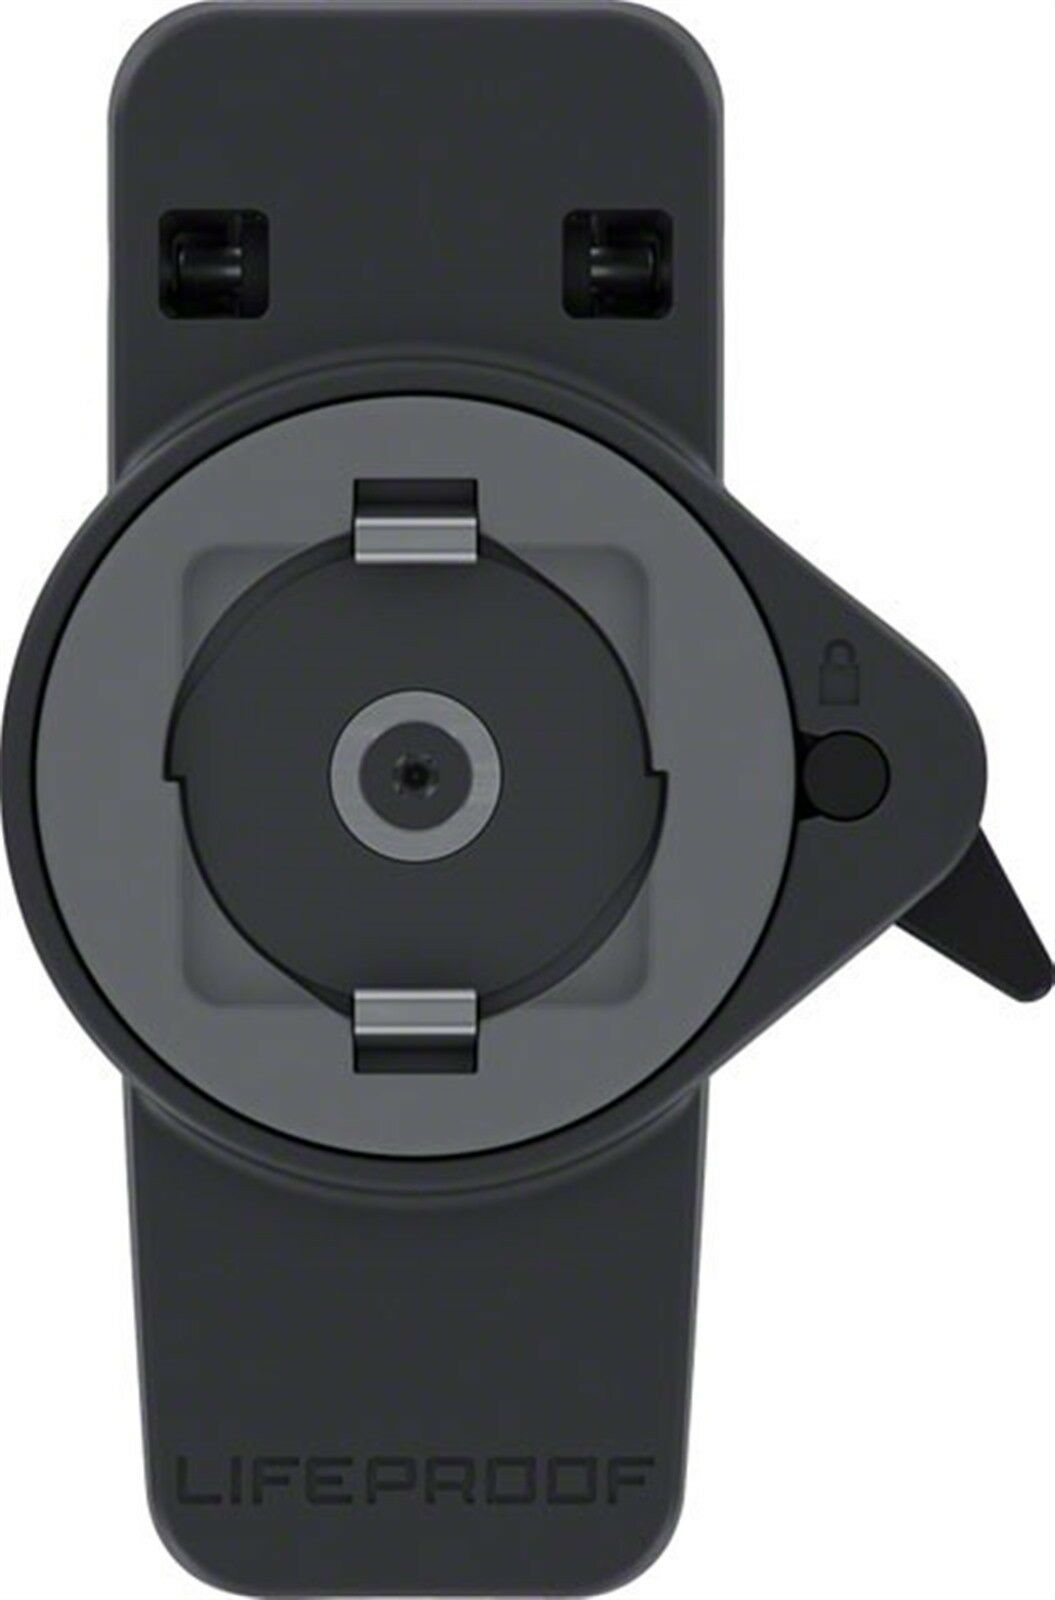 "LifeProof LifeActiv 2"" Belt Clip"